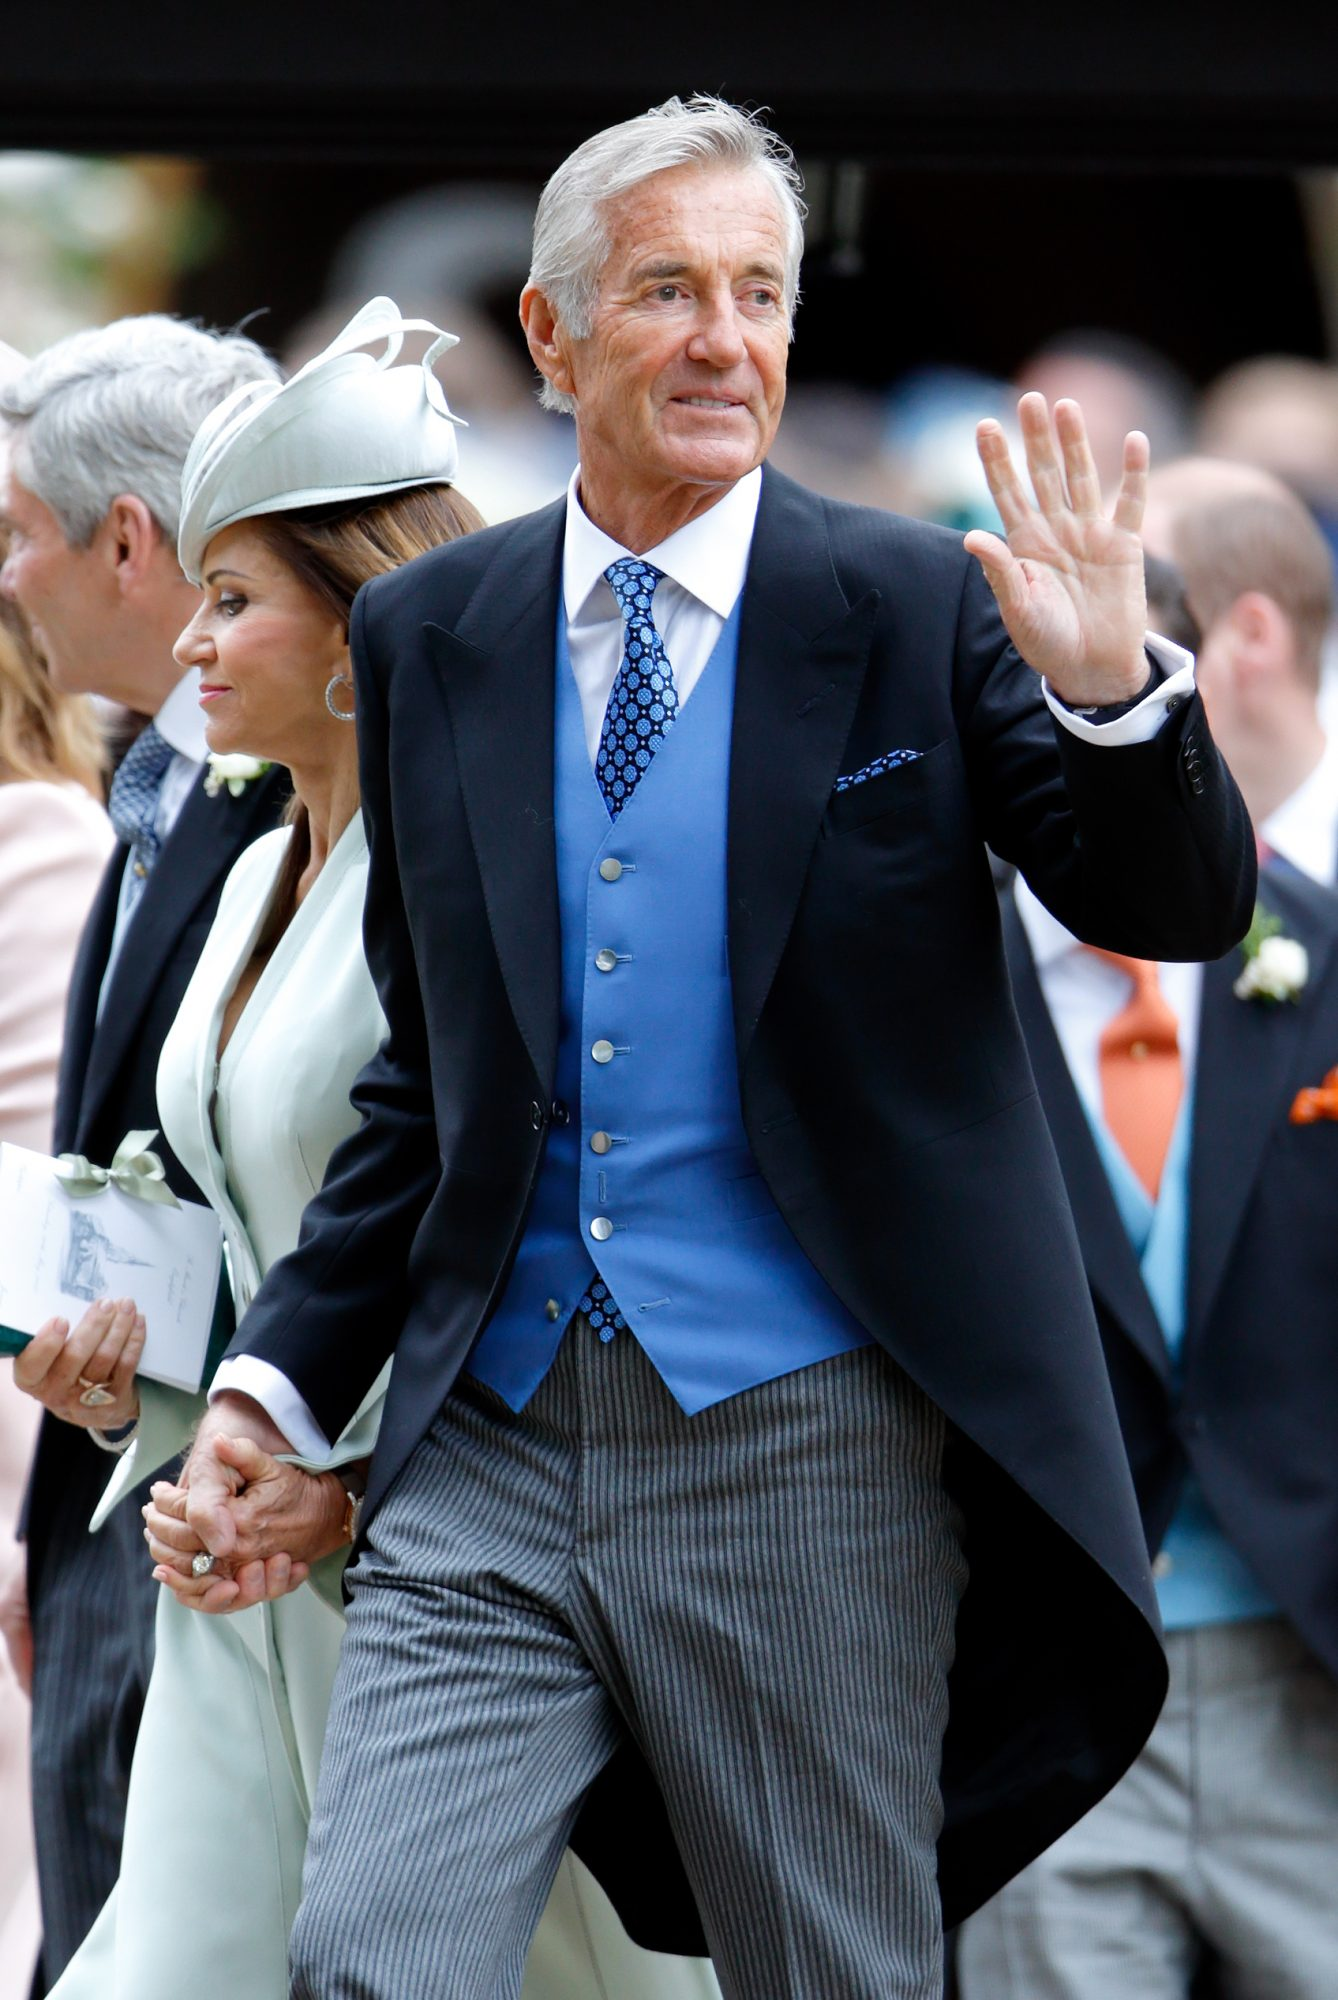 Pippa Middleton's Father-in-Law Arrested for Allegedly Raping a Minor